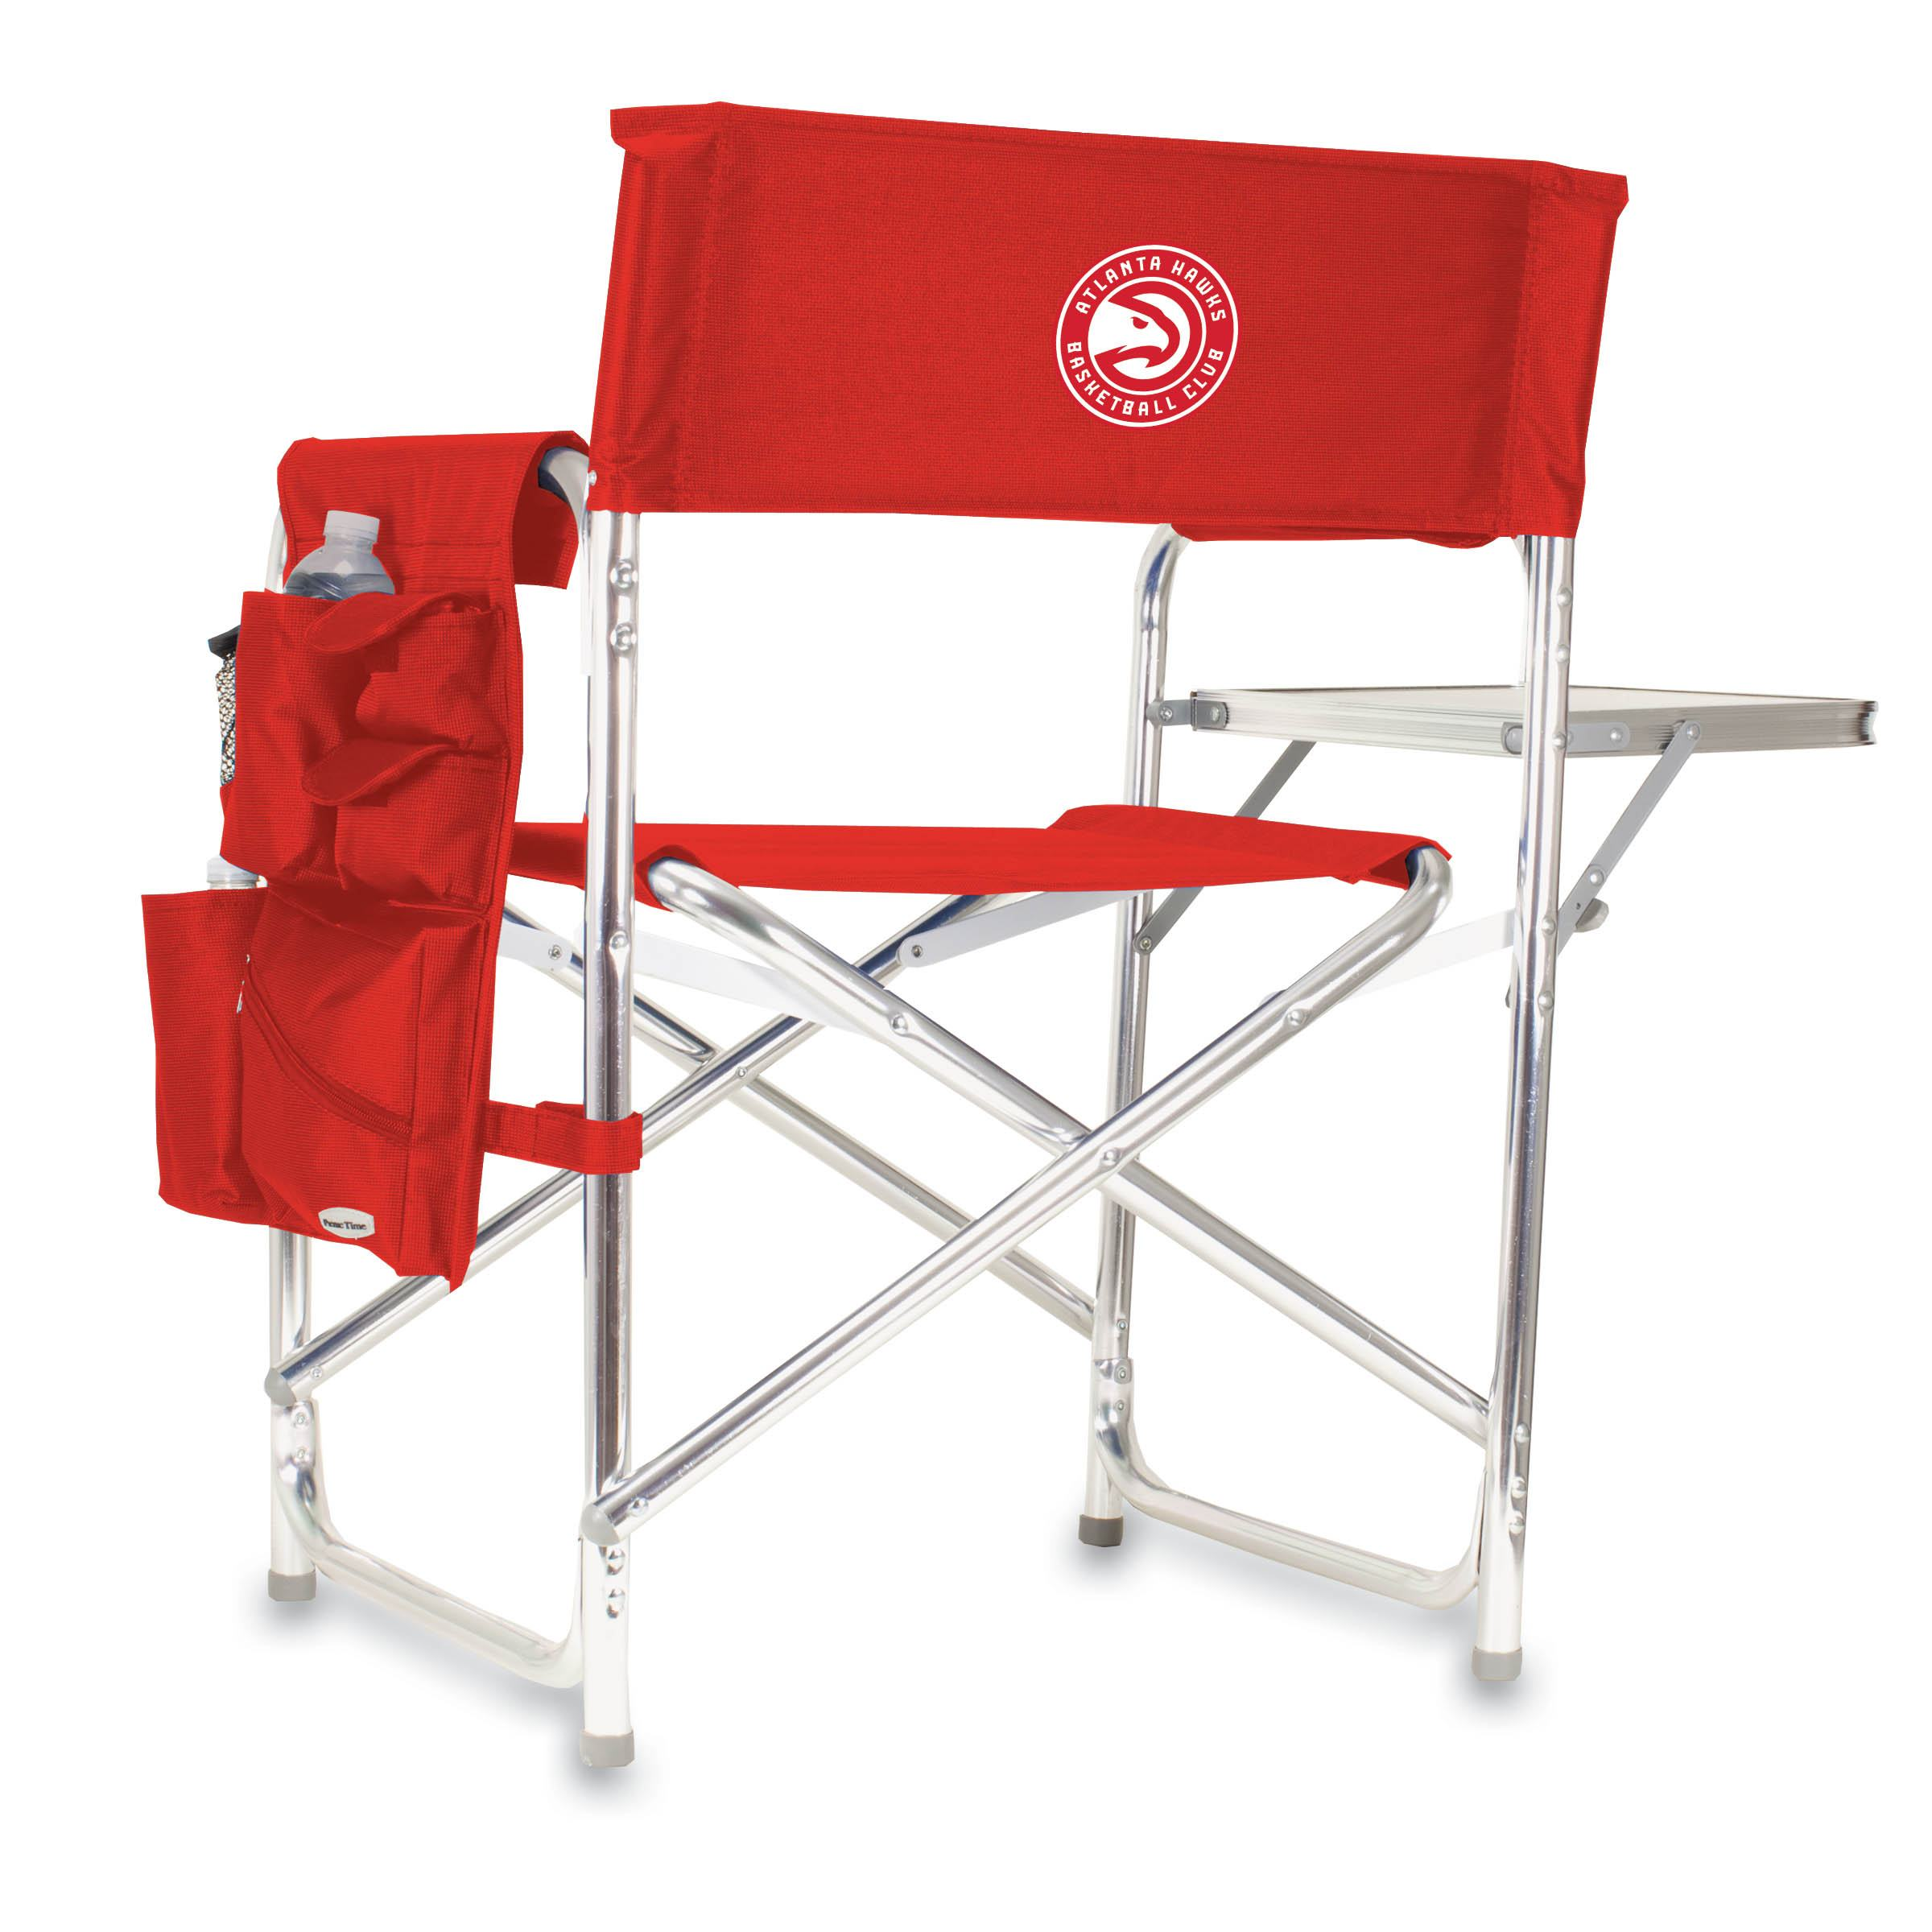 Picnic Time Nba Sports Chair Atlanta Hawks